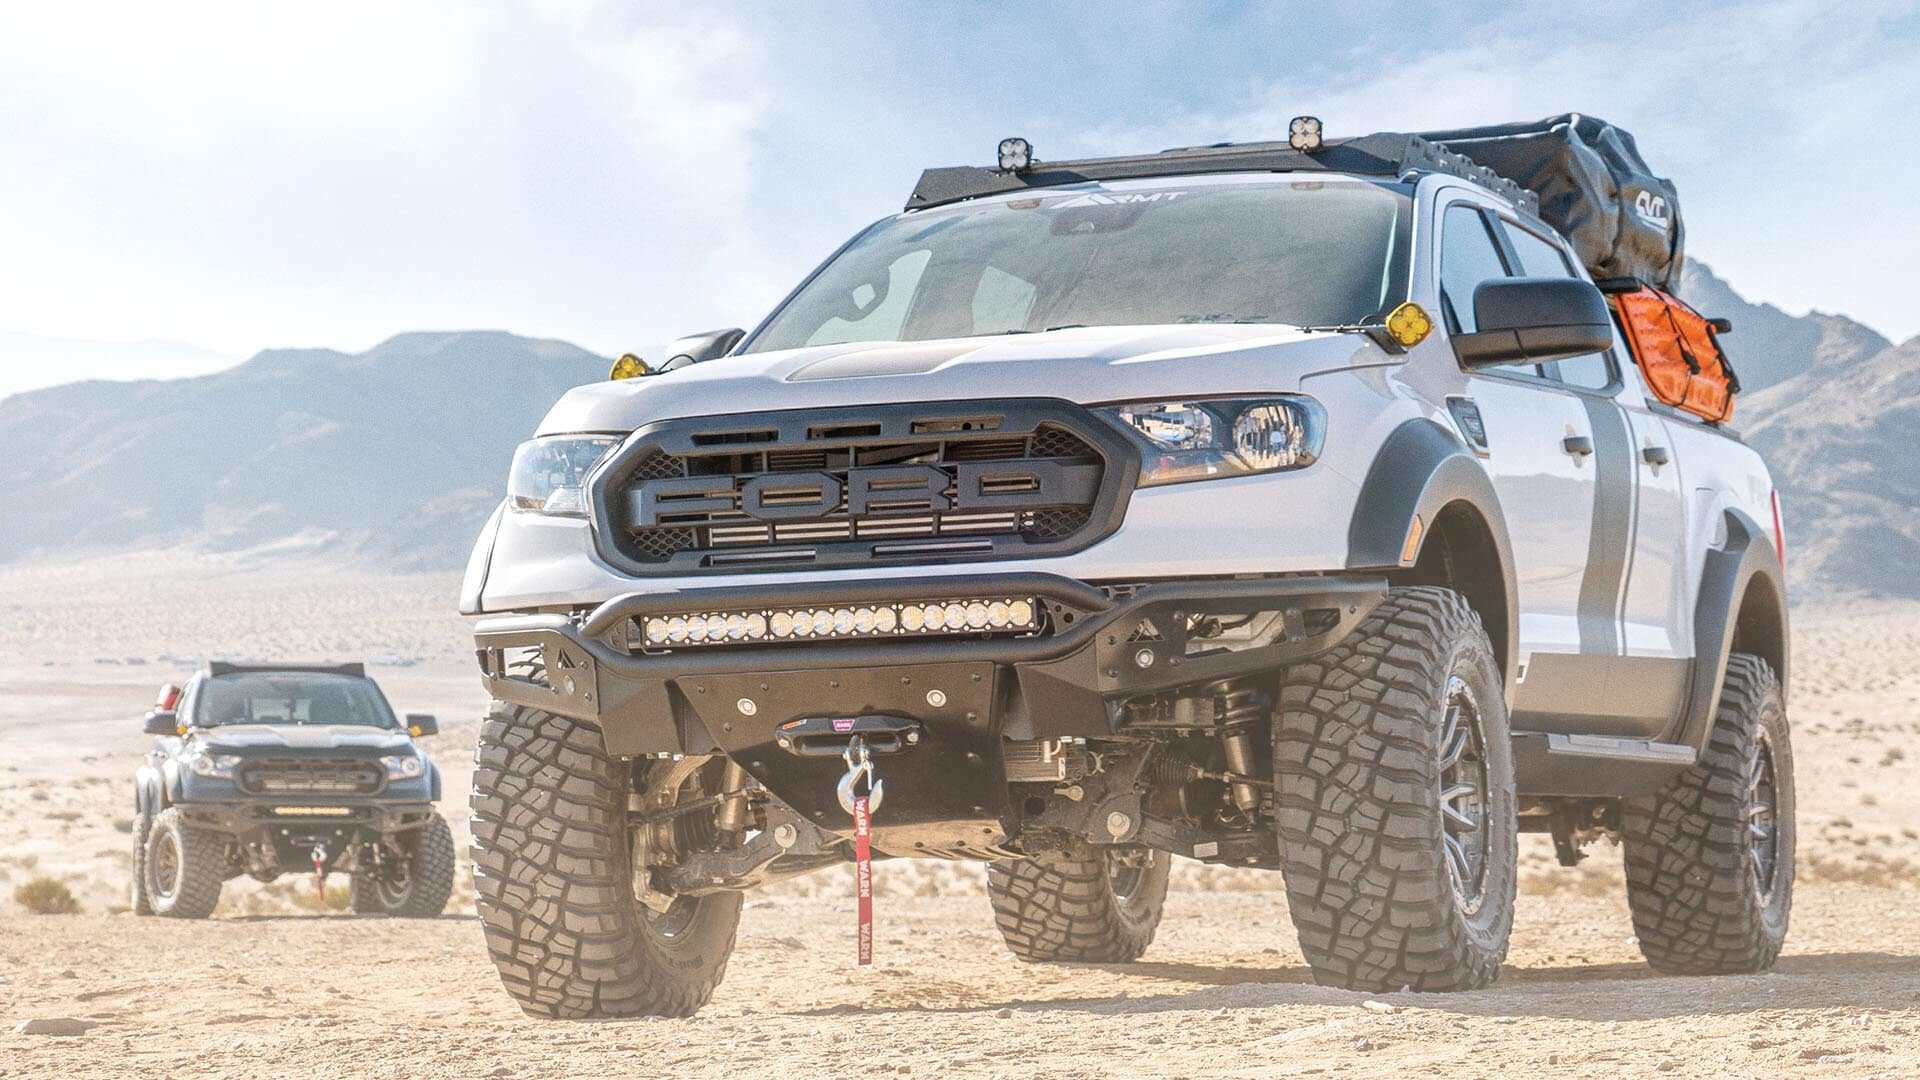 Sewell Ford RMT Overland Dealer in Odessa, Texas Ford Rangers